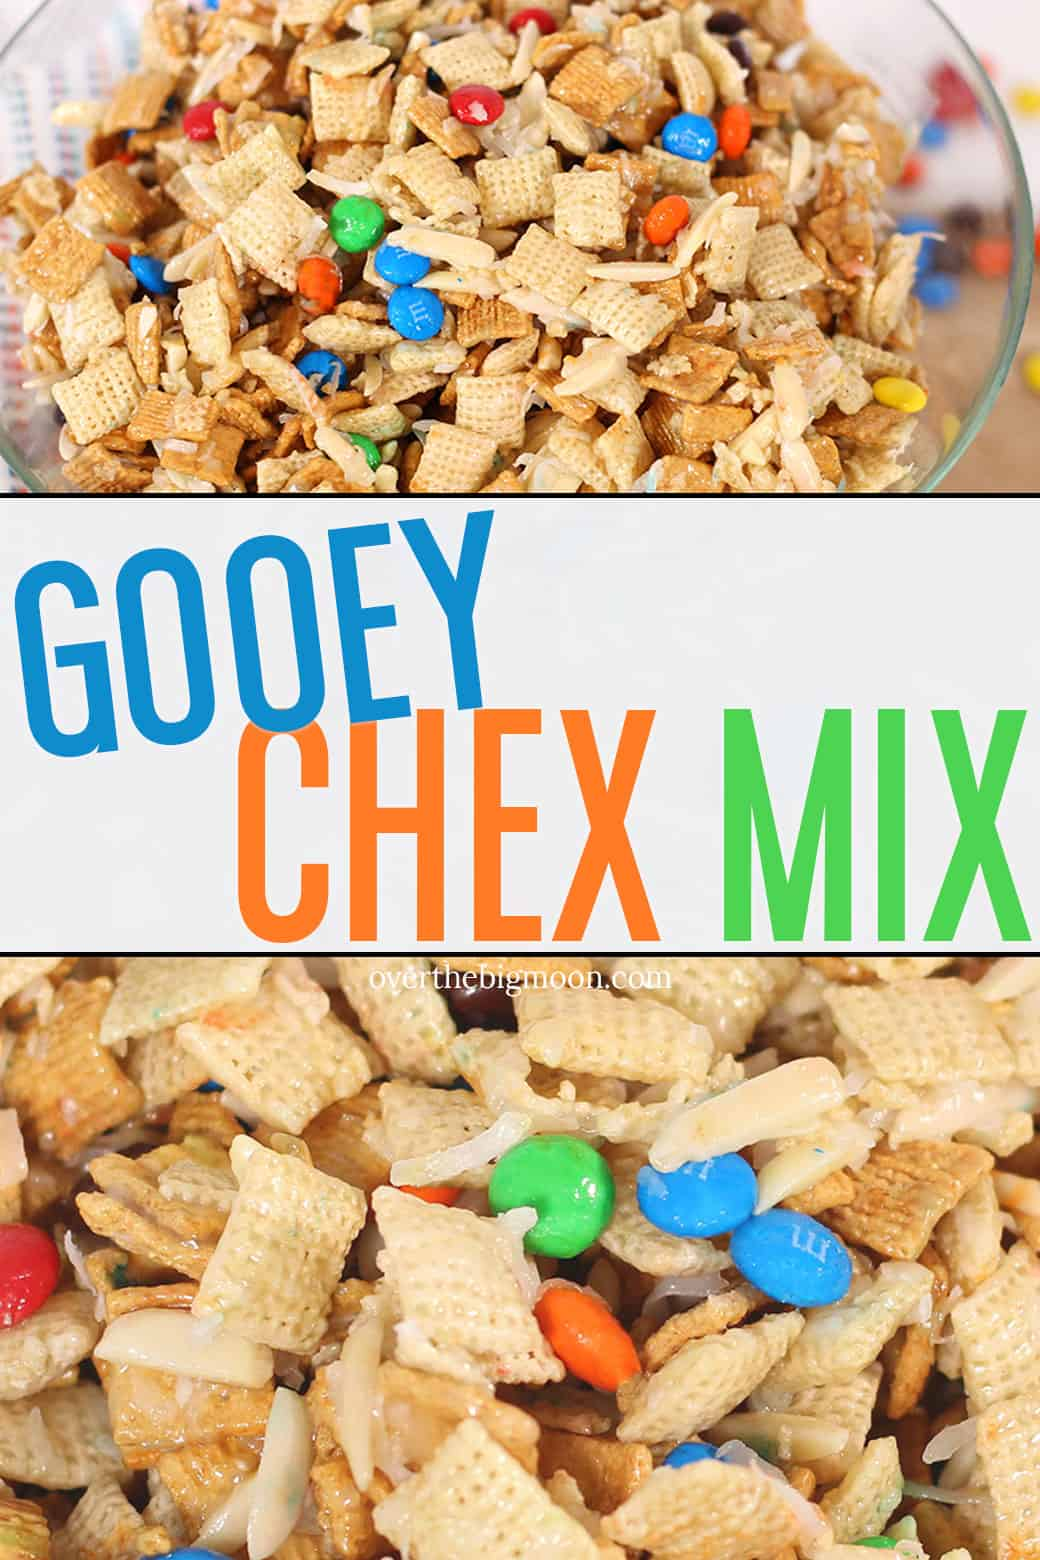 This Gooey Chex Mix is the perfect treat -- filled with Chex, Golden Grahams, Cashews, M&M's and more! Everyone will love this! From overthebigmoon.com!